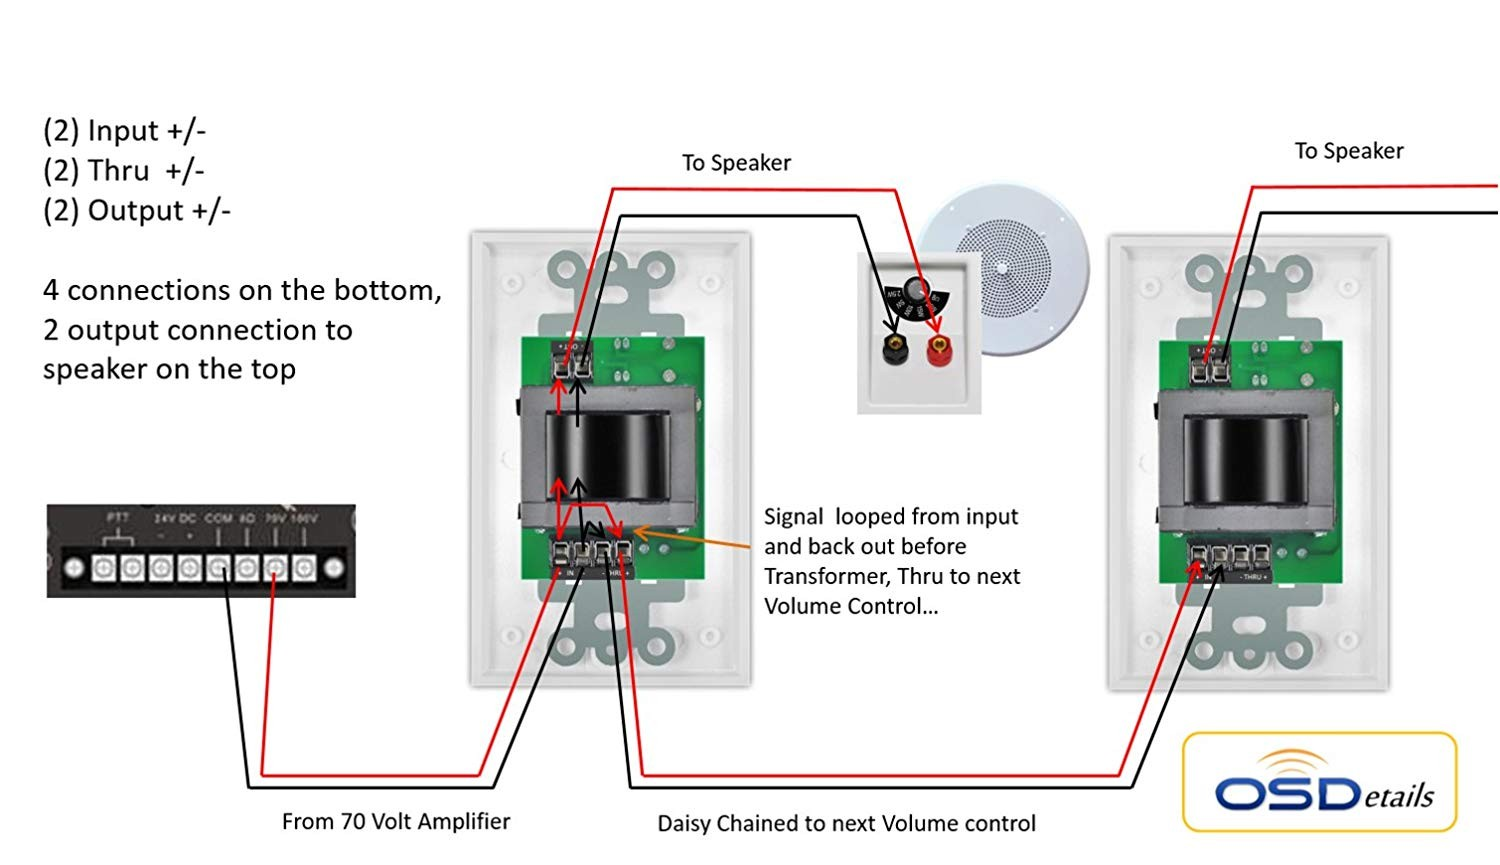 Wiring Diagram Volume Control Toa - Wiring Diagram Services •